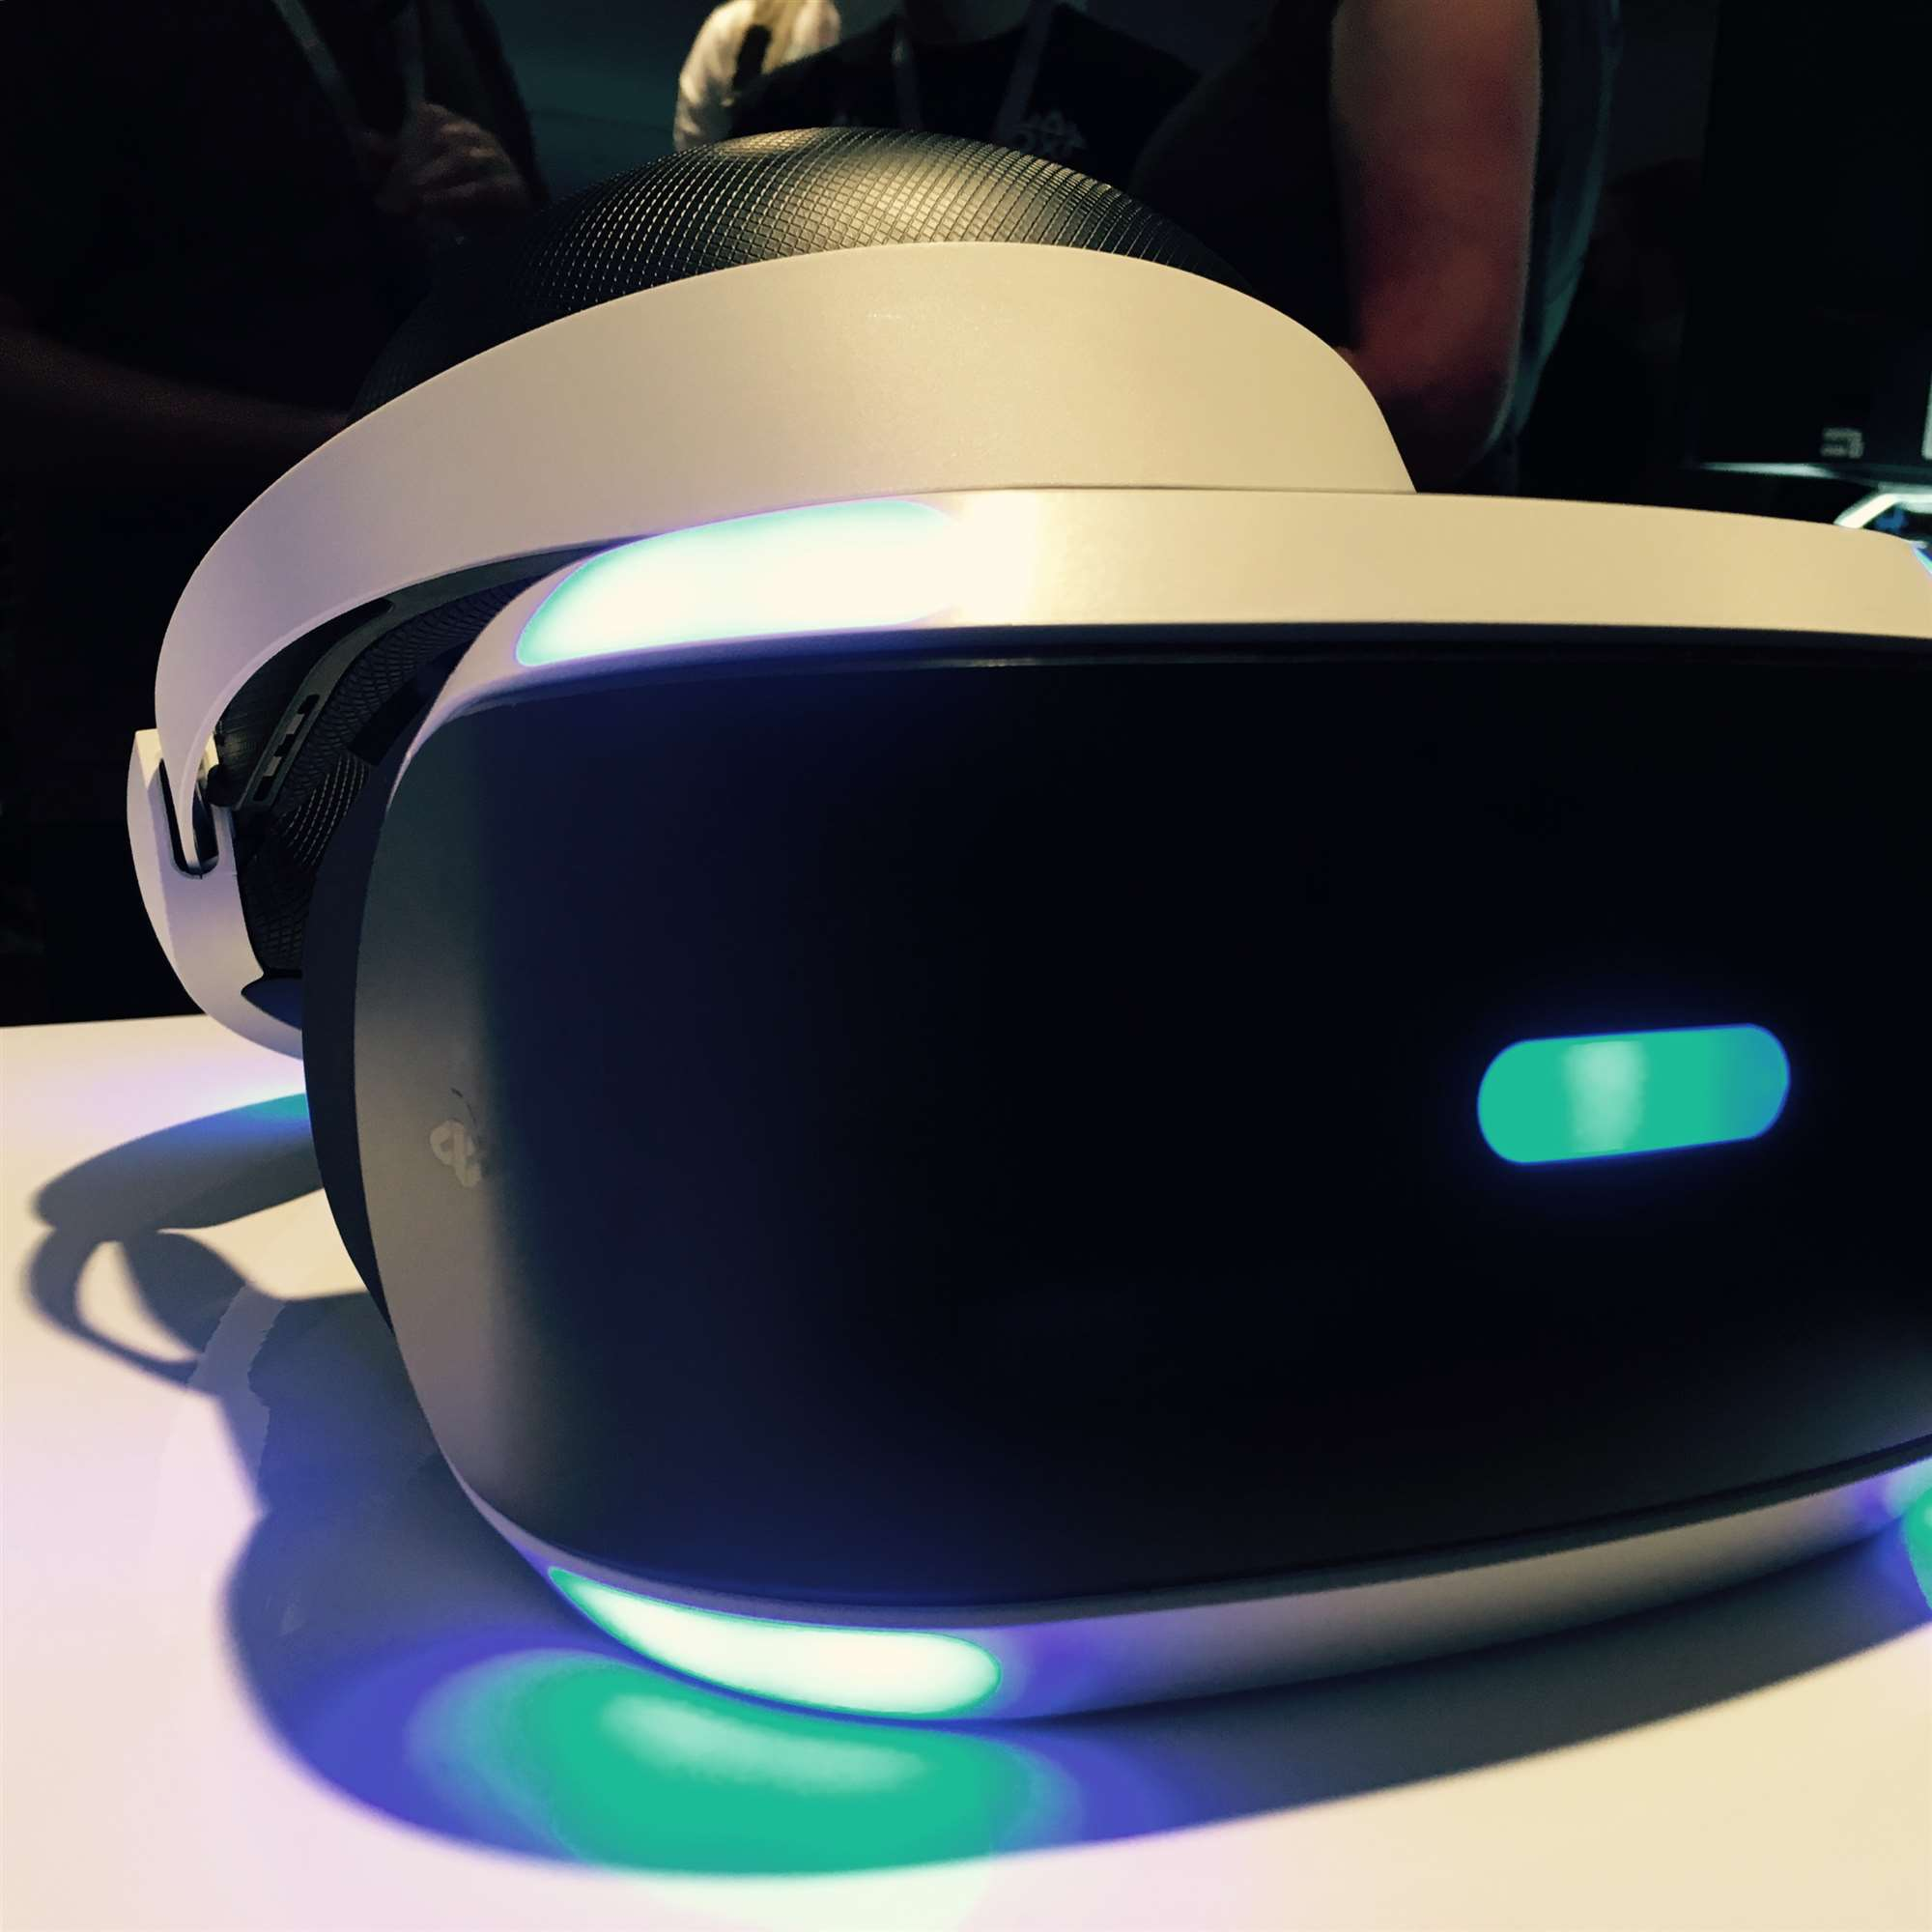 Ps4 virtual reality release date in Australia